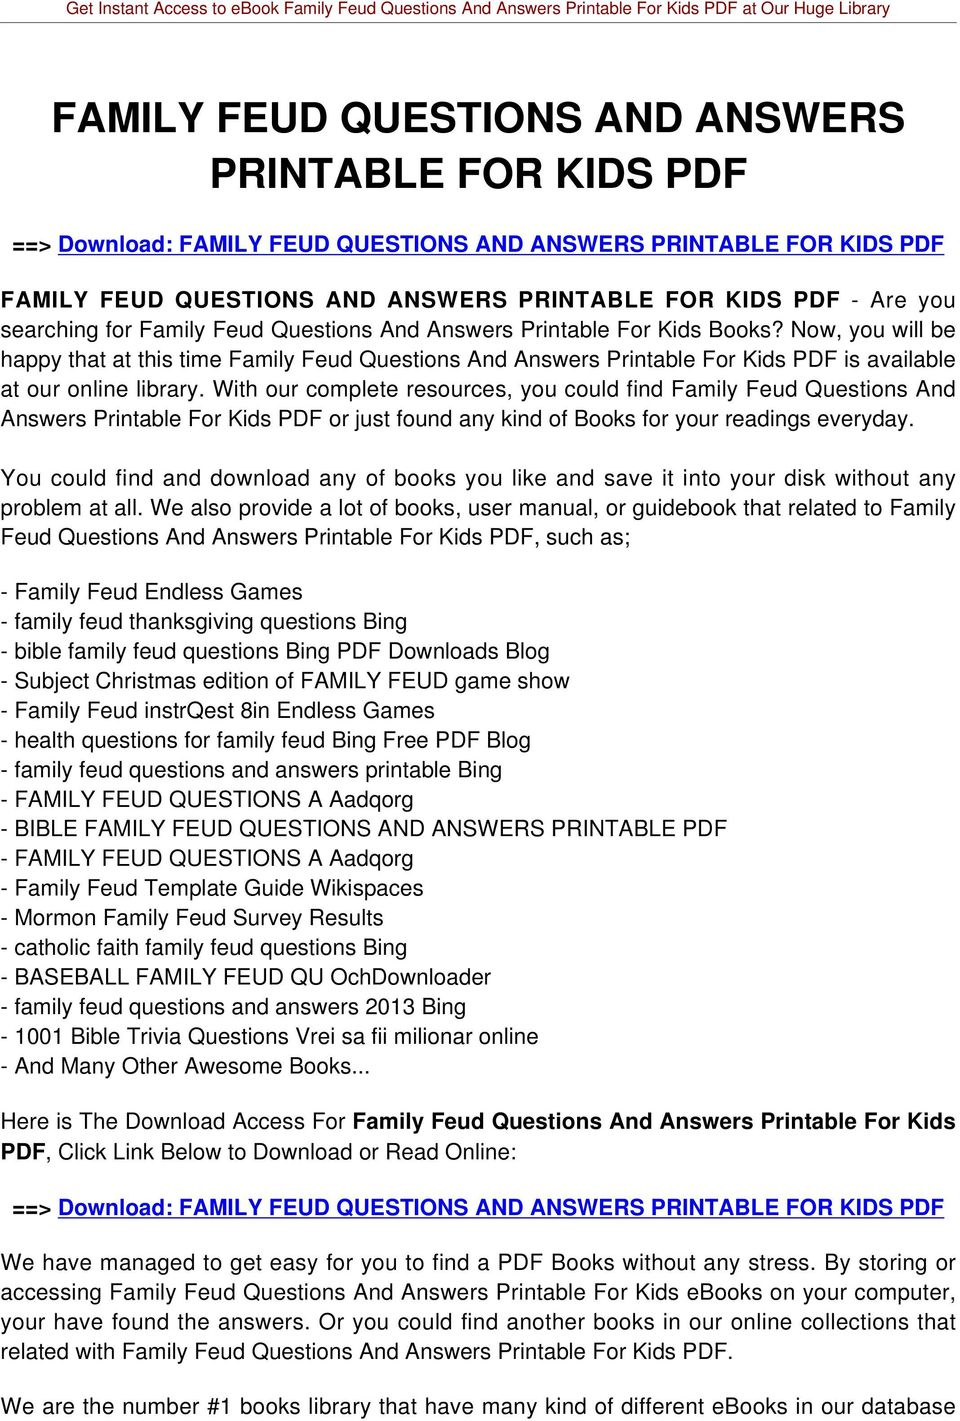 Now, you will be happy that at this time Family Feud Questions And Answers Printable For Kids PDF is available at our online library.